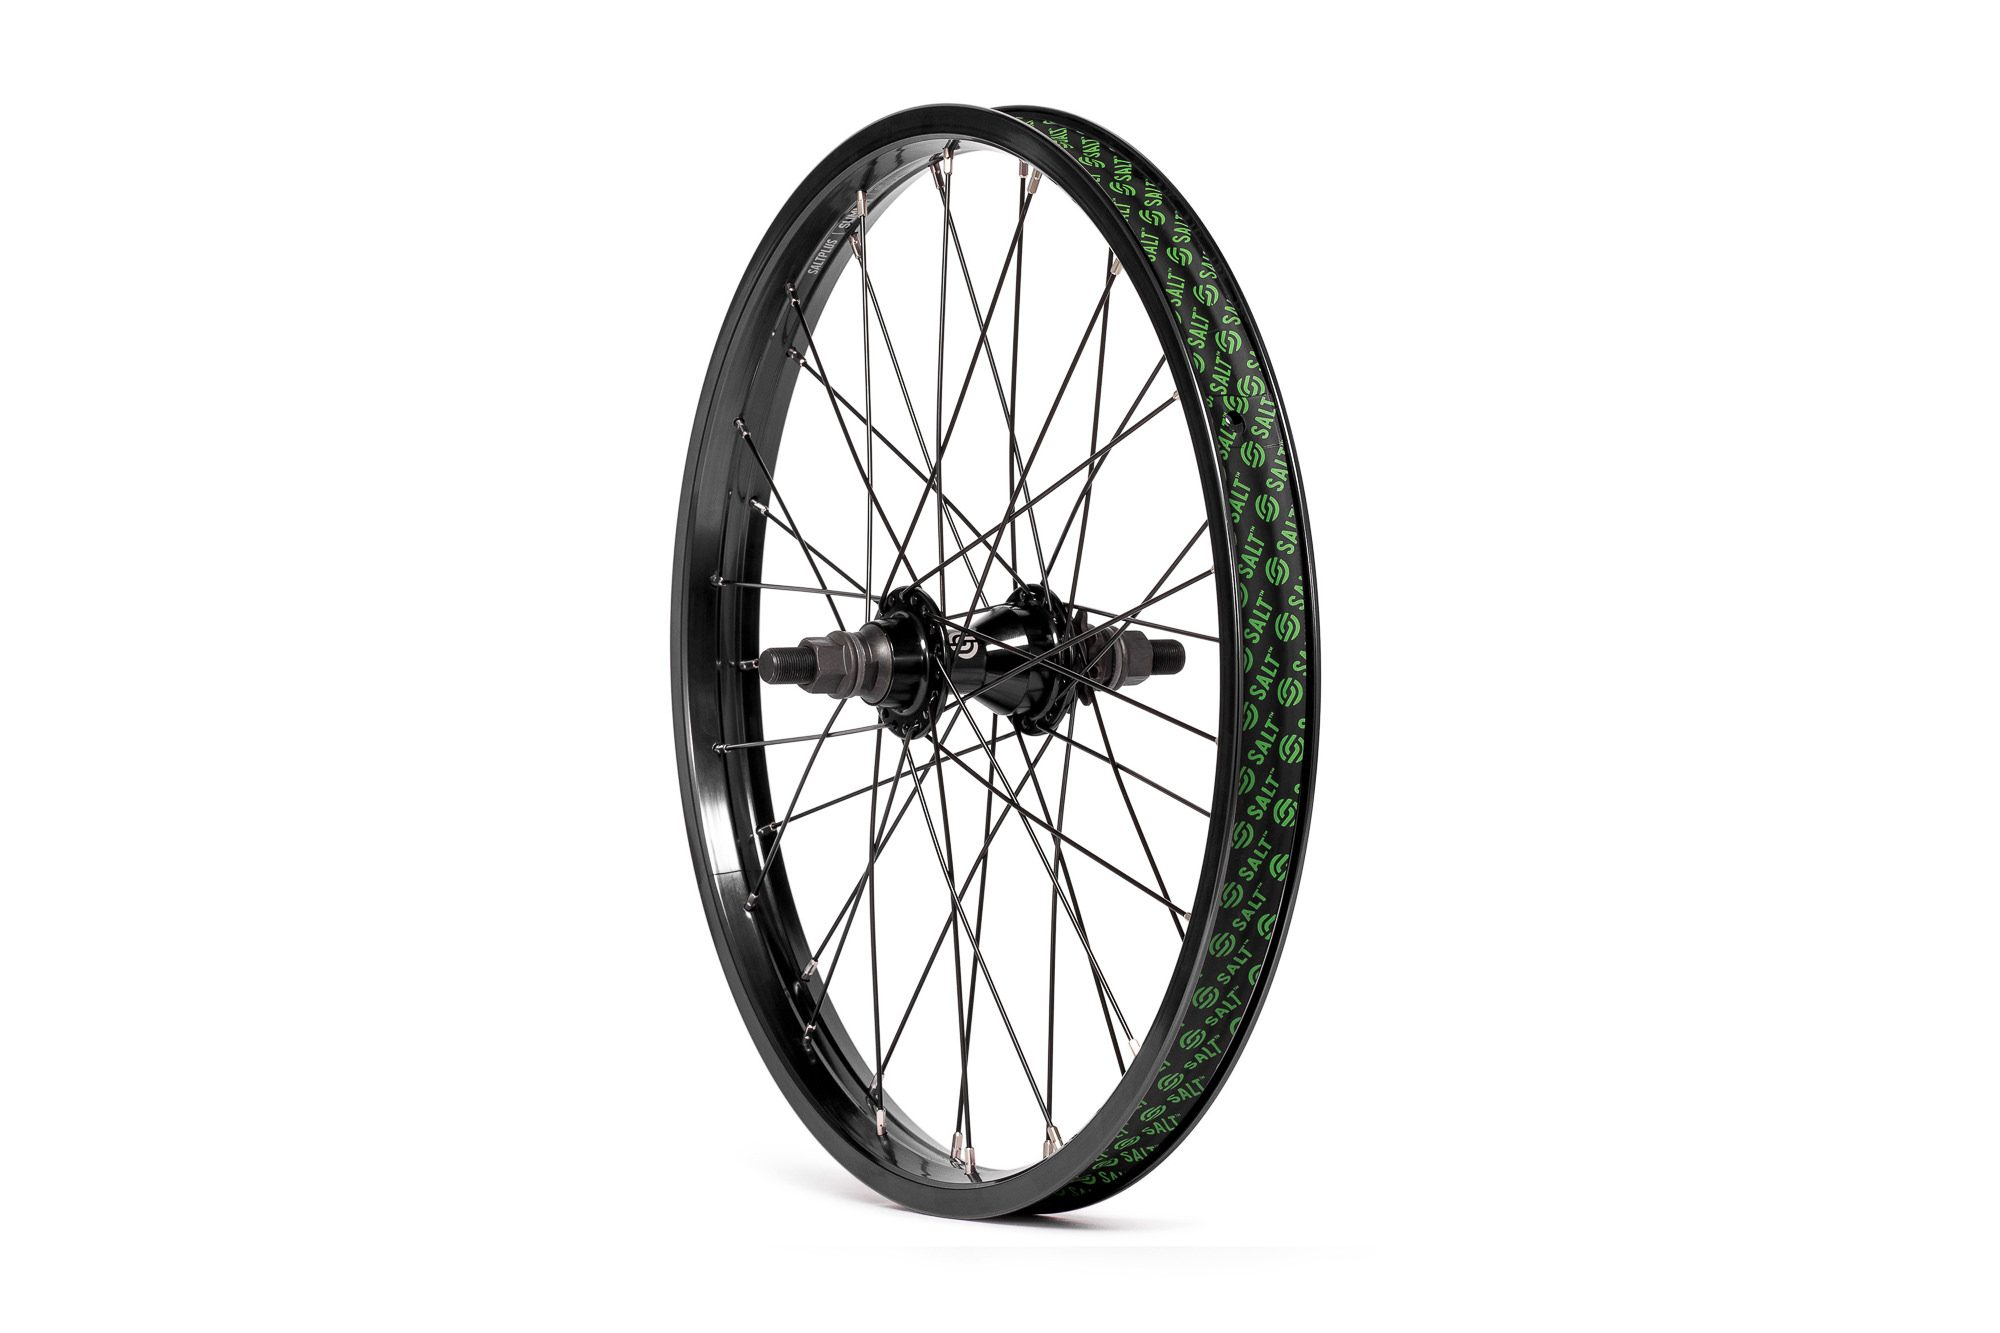 Salt_Everest_CS_rear_wheel_black_01